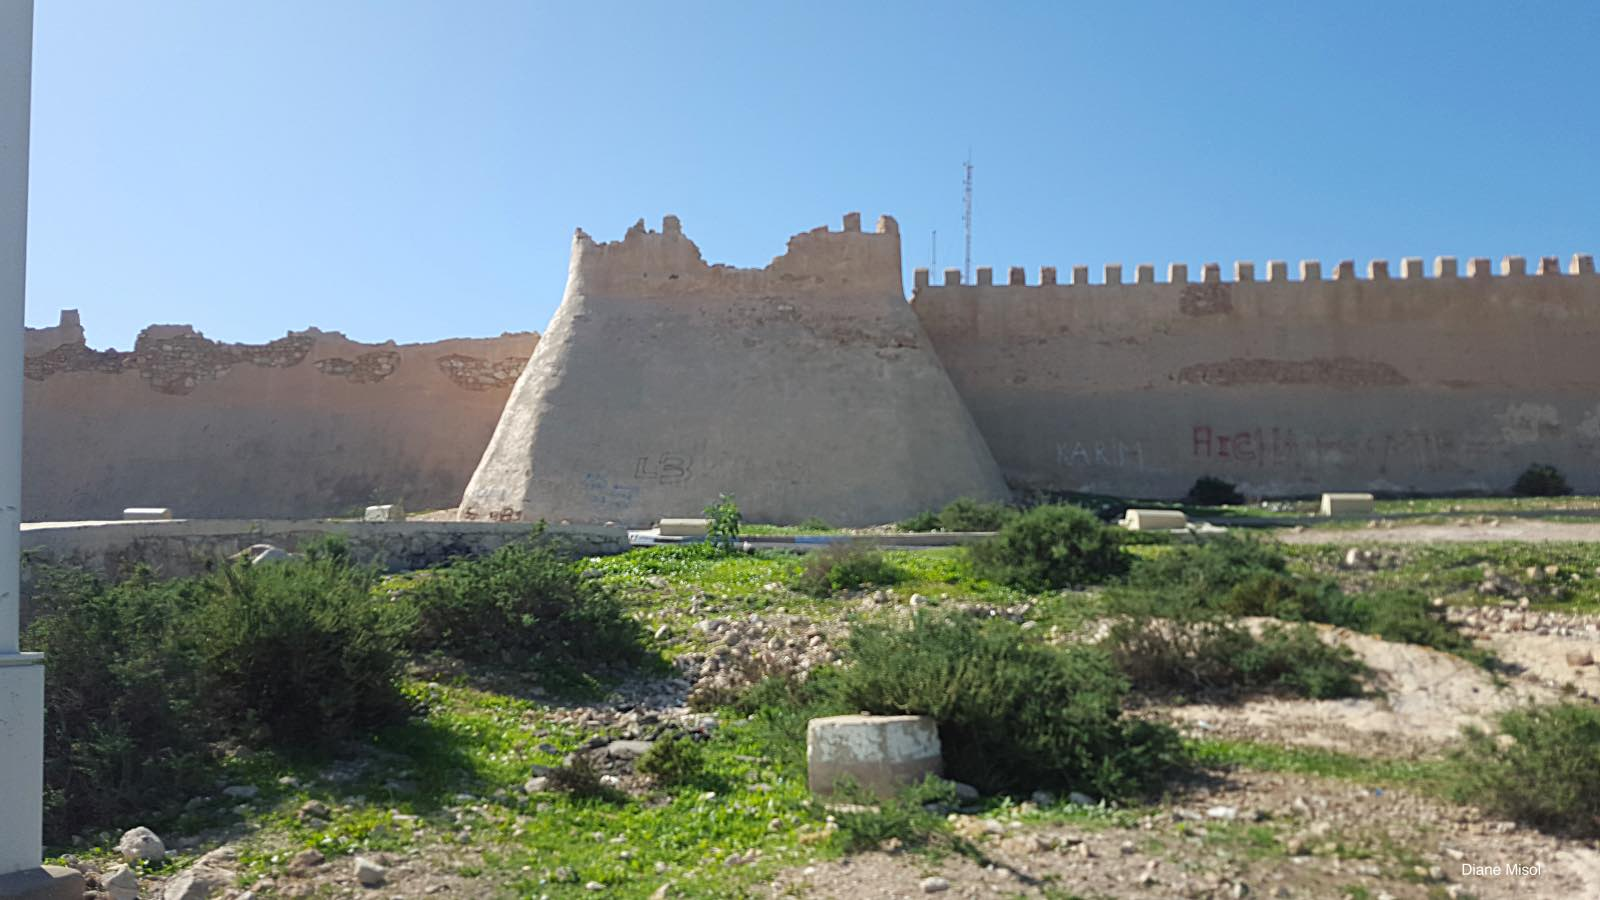 Ancient Kasbah / Casbah Fort Wall, Agadir, Morocco